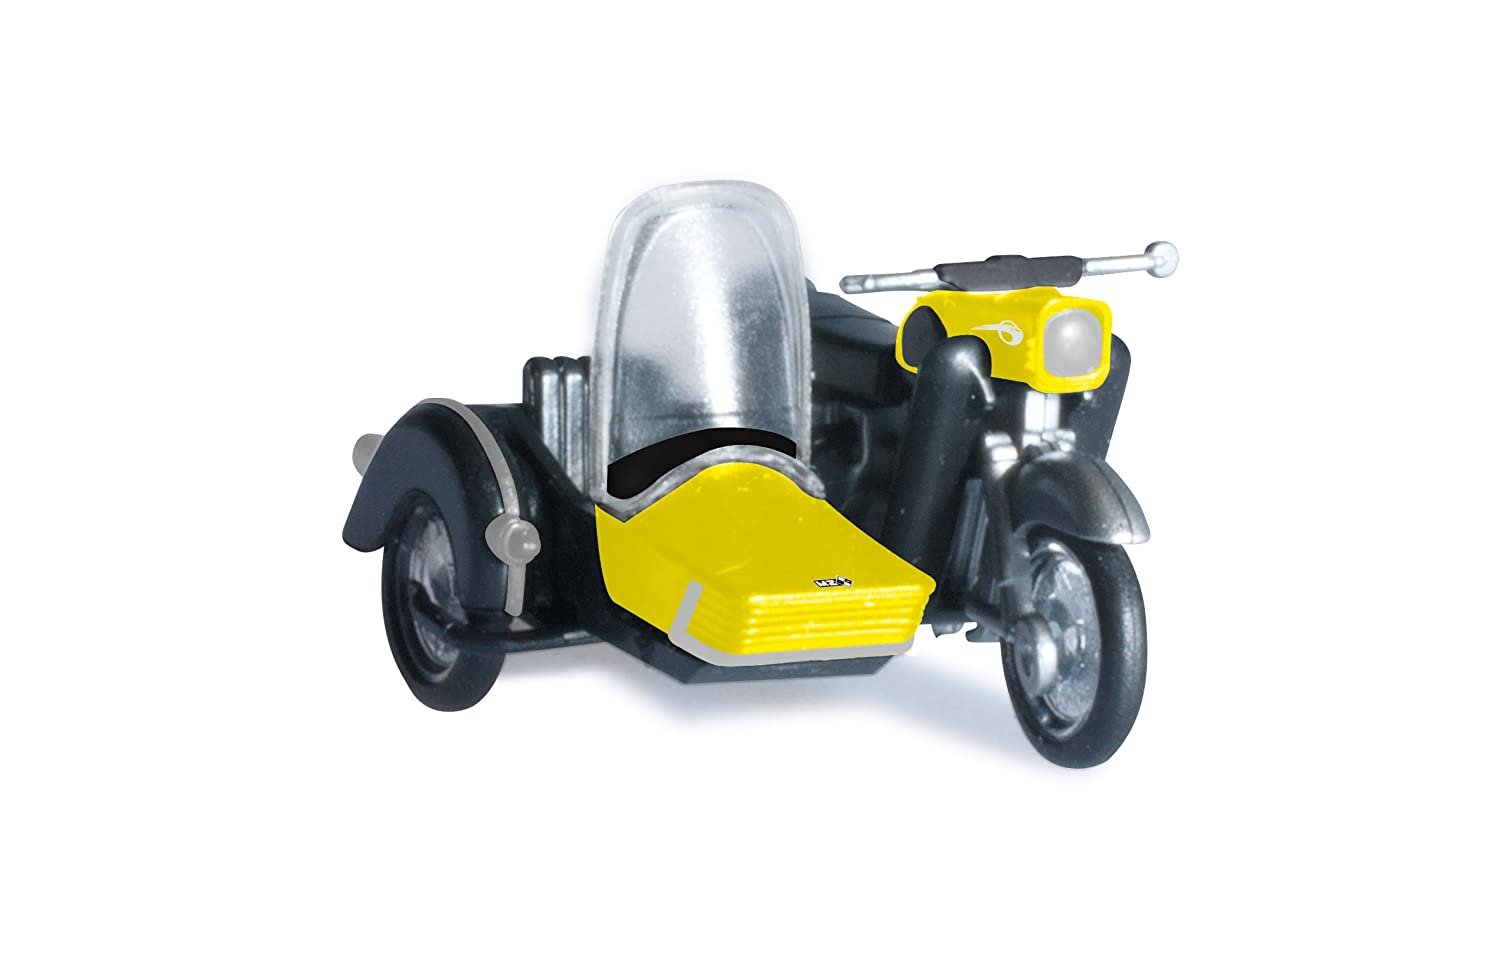 HERPA 053433-003 Mz 250 with Matching Sidecar Model Set Yellow//Black